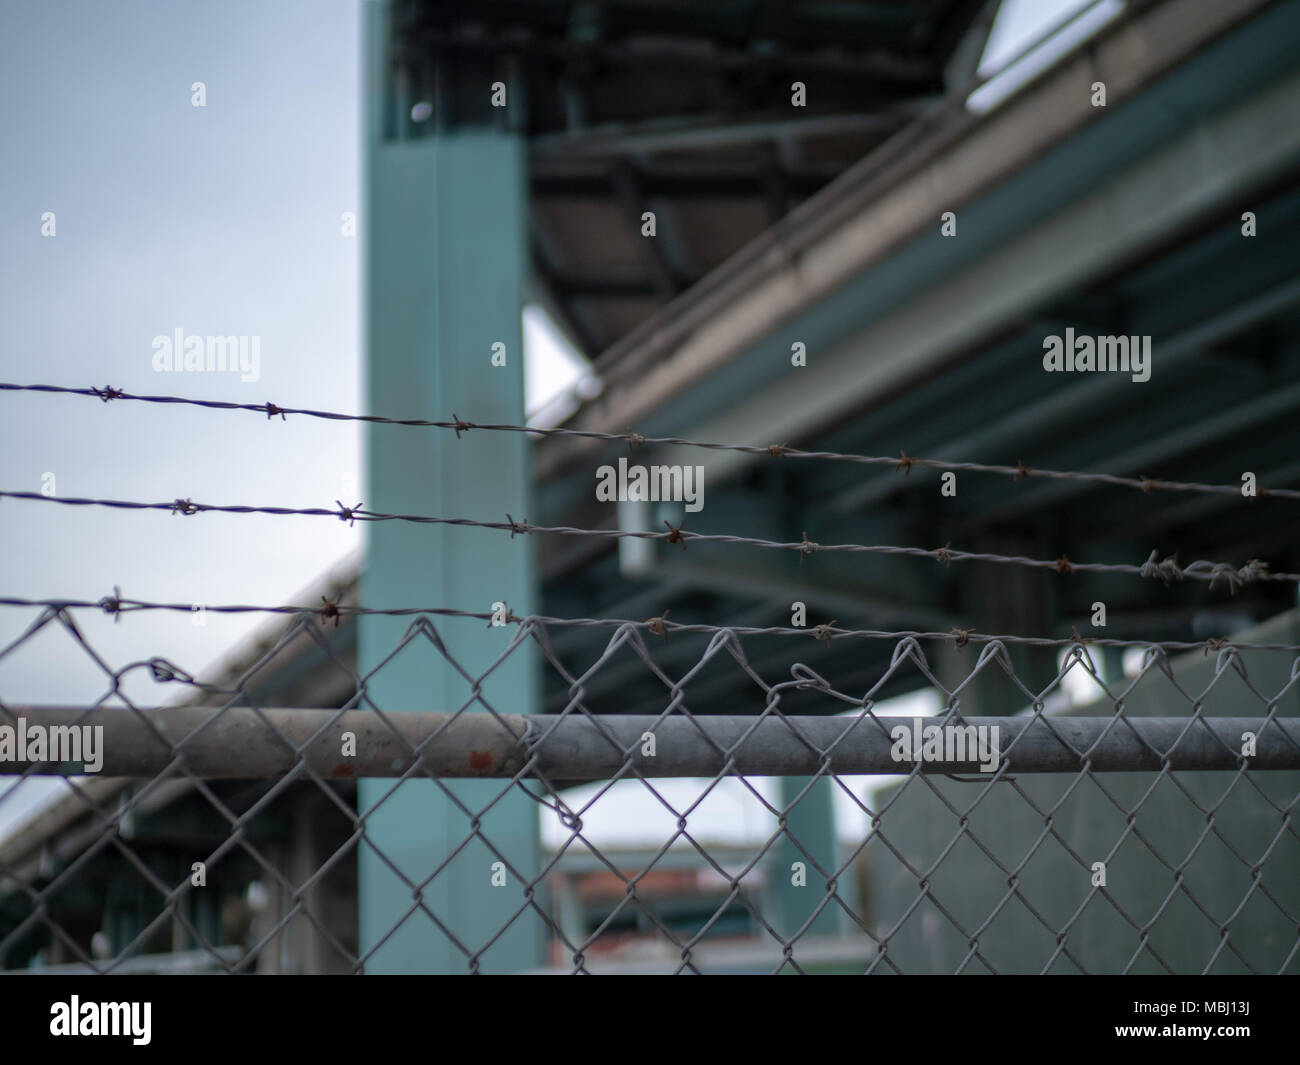 Security Fence Cut Out Stockfotos & Security Fence Cut Out Bilder ...